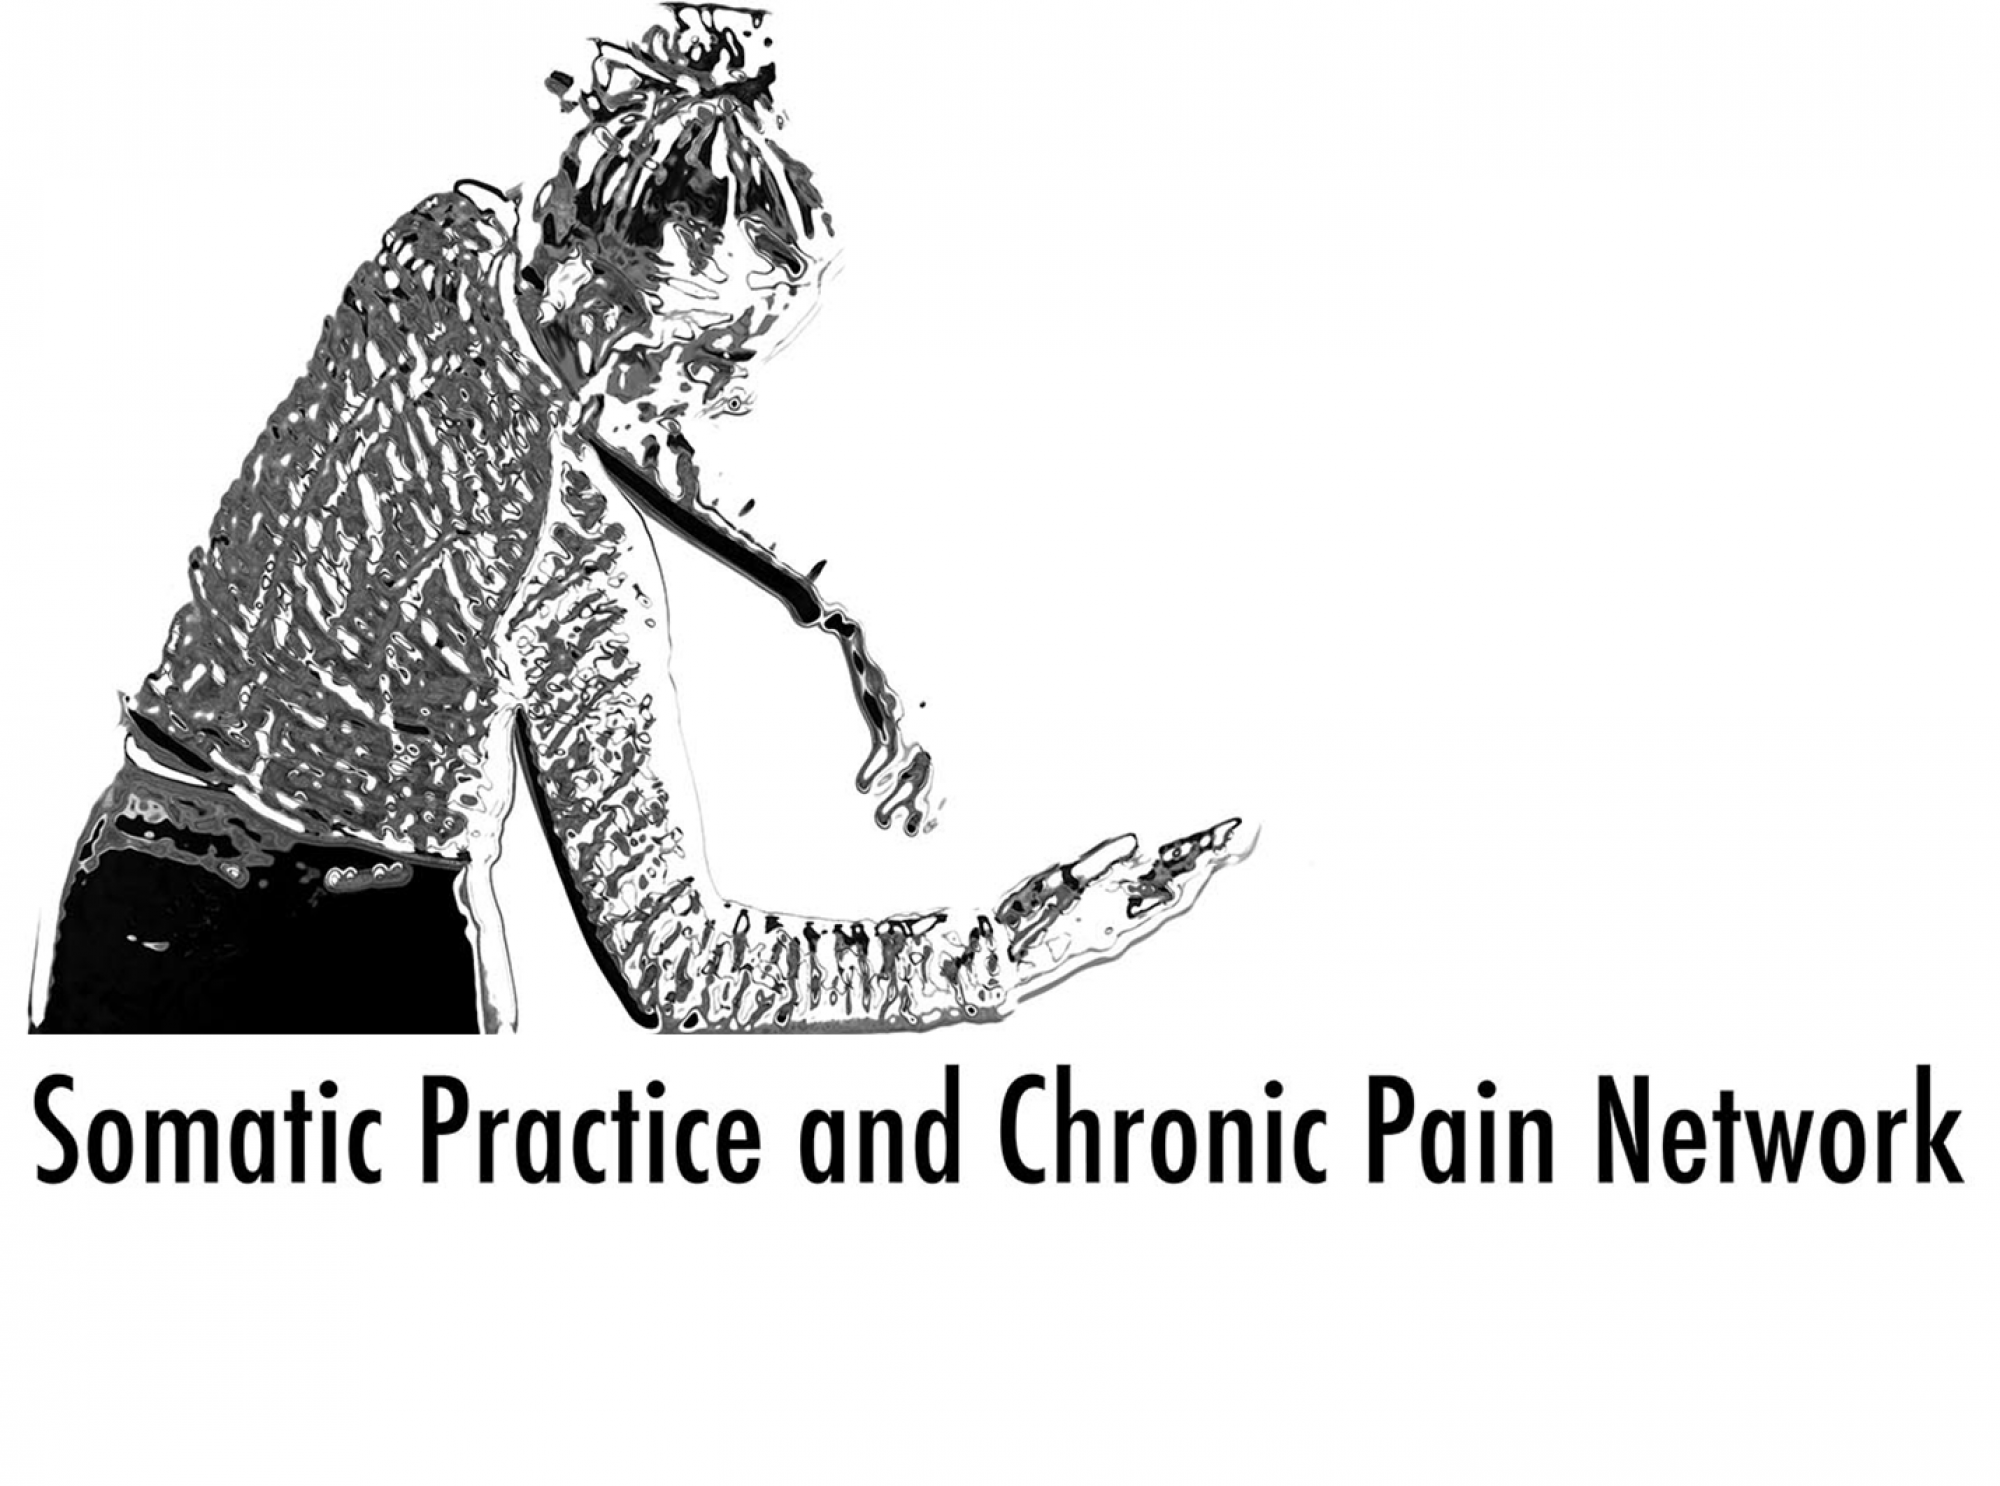 Somatic Practice and Chronic Pain Network